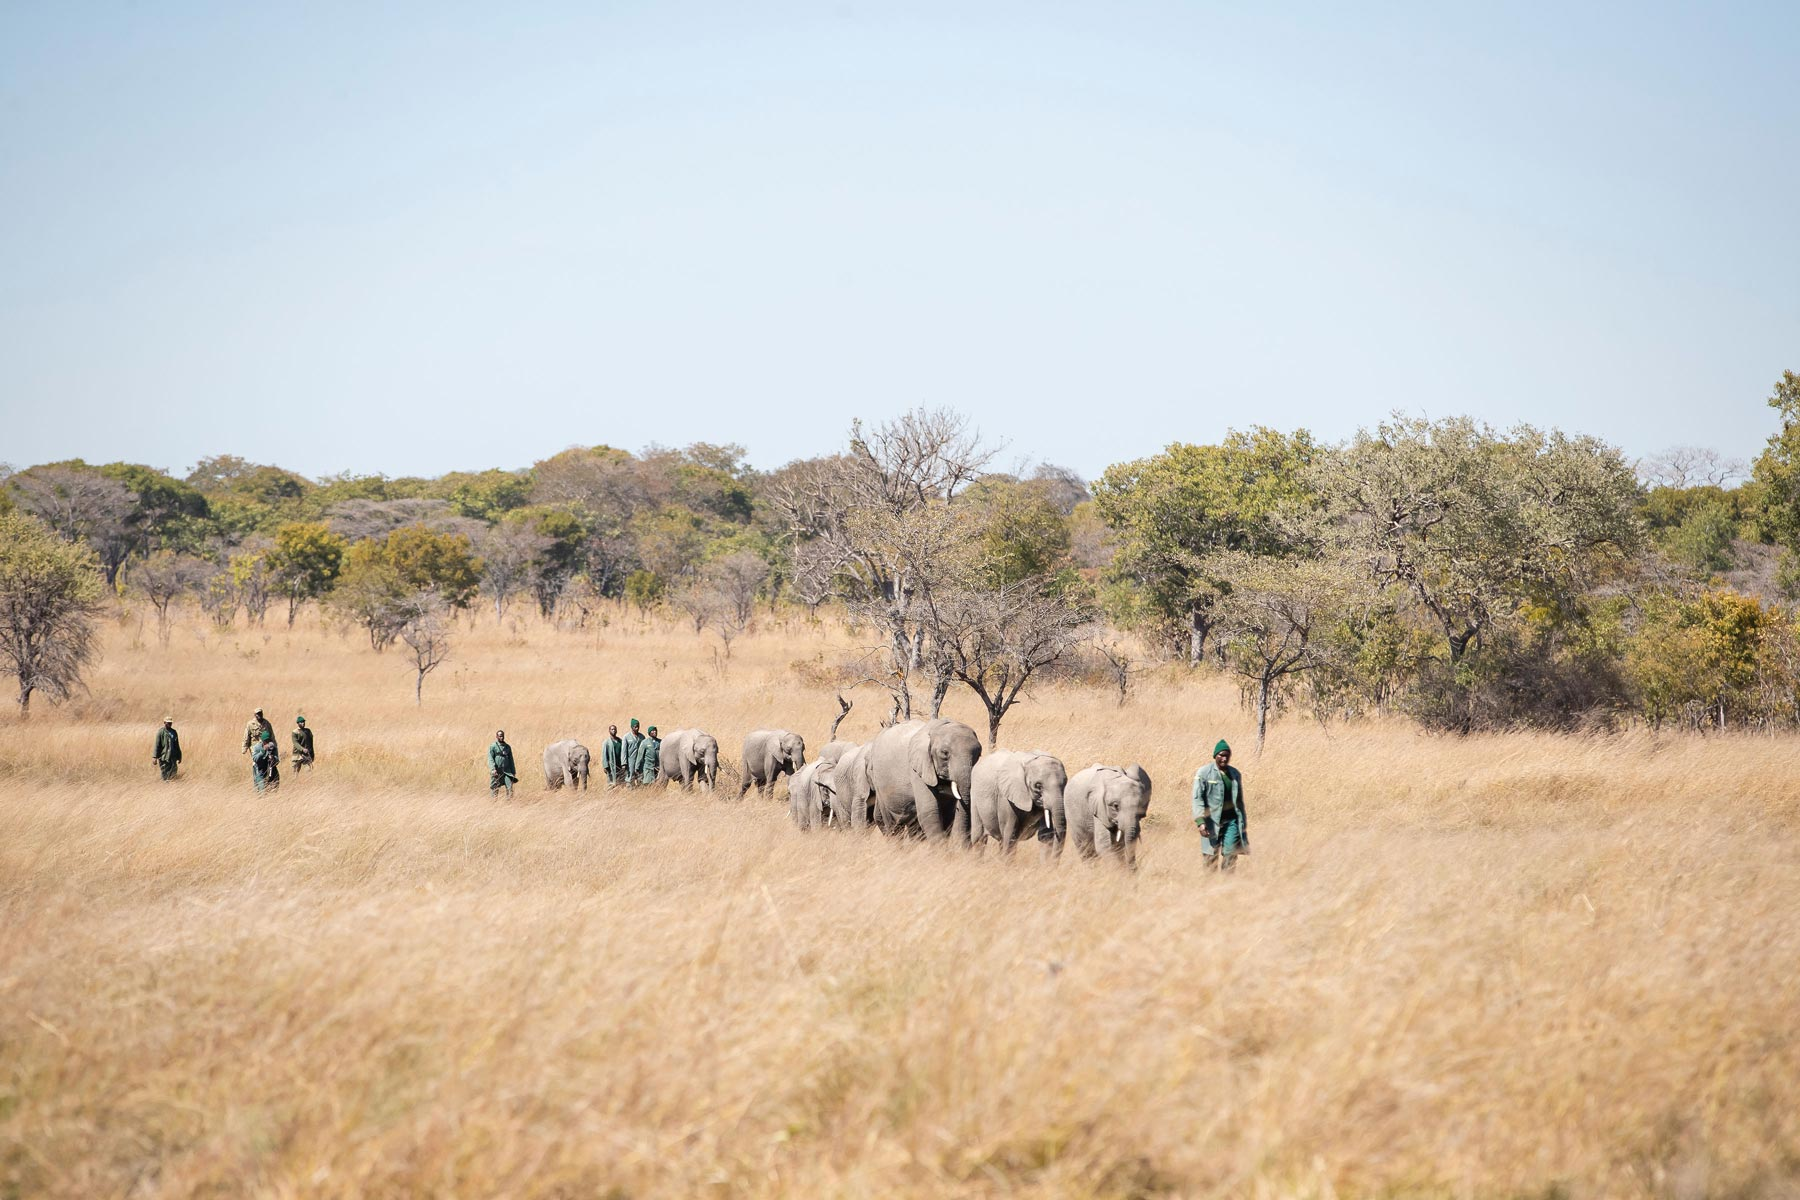 Game Rangers International keepers and rangers walking with elephants in Zambia.